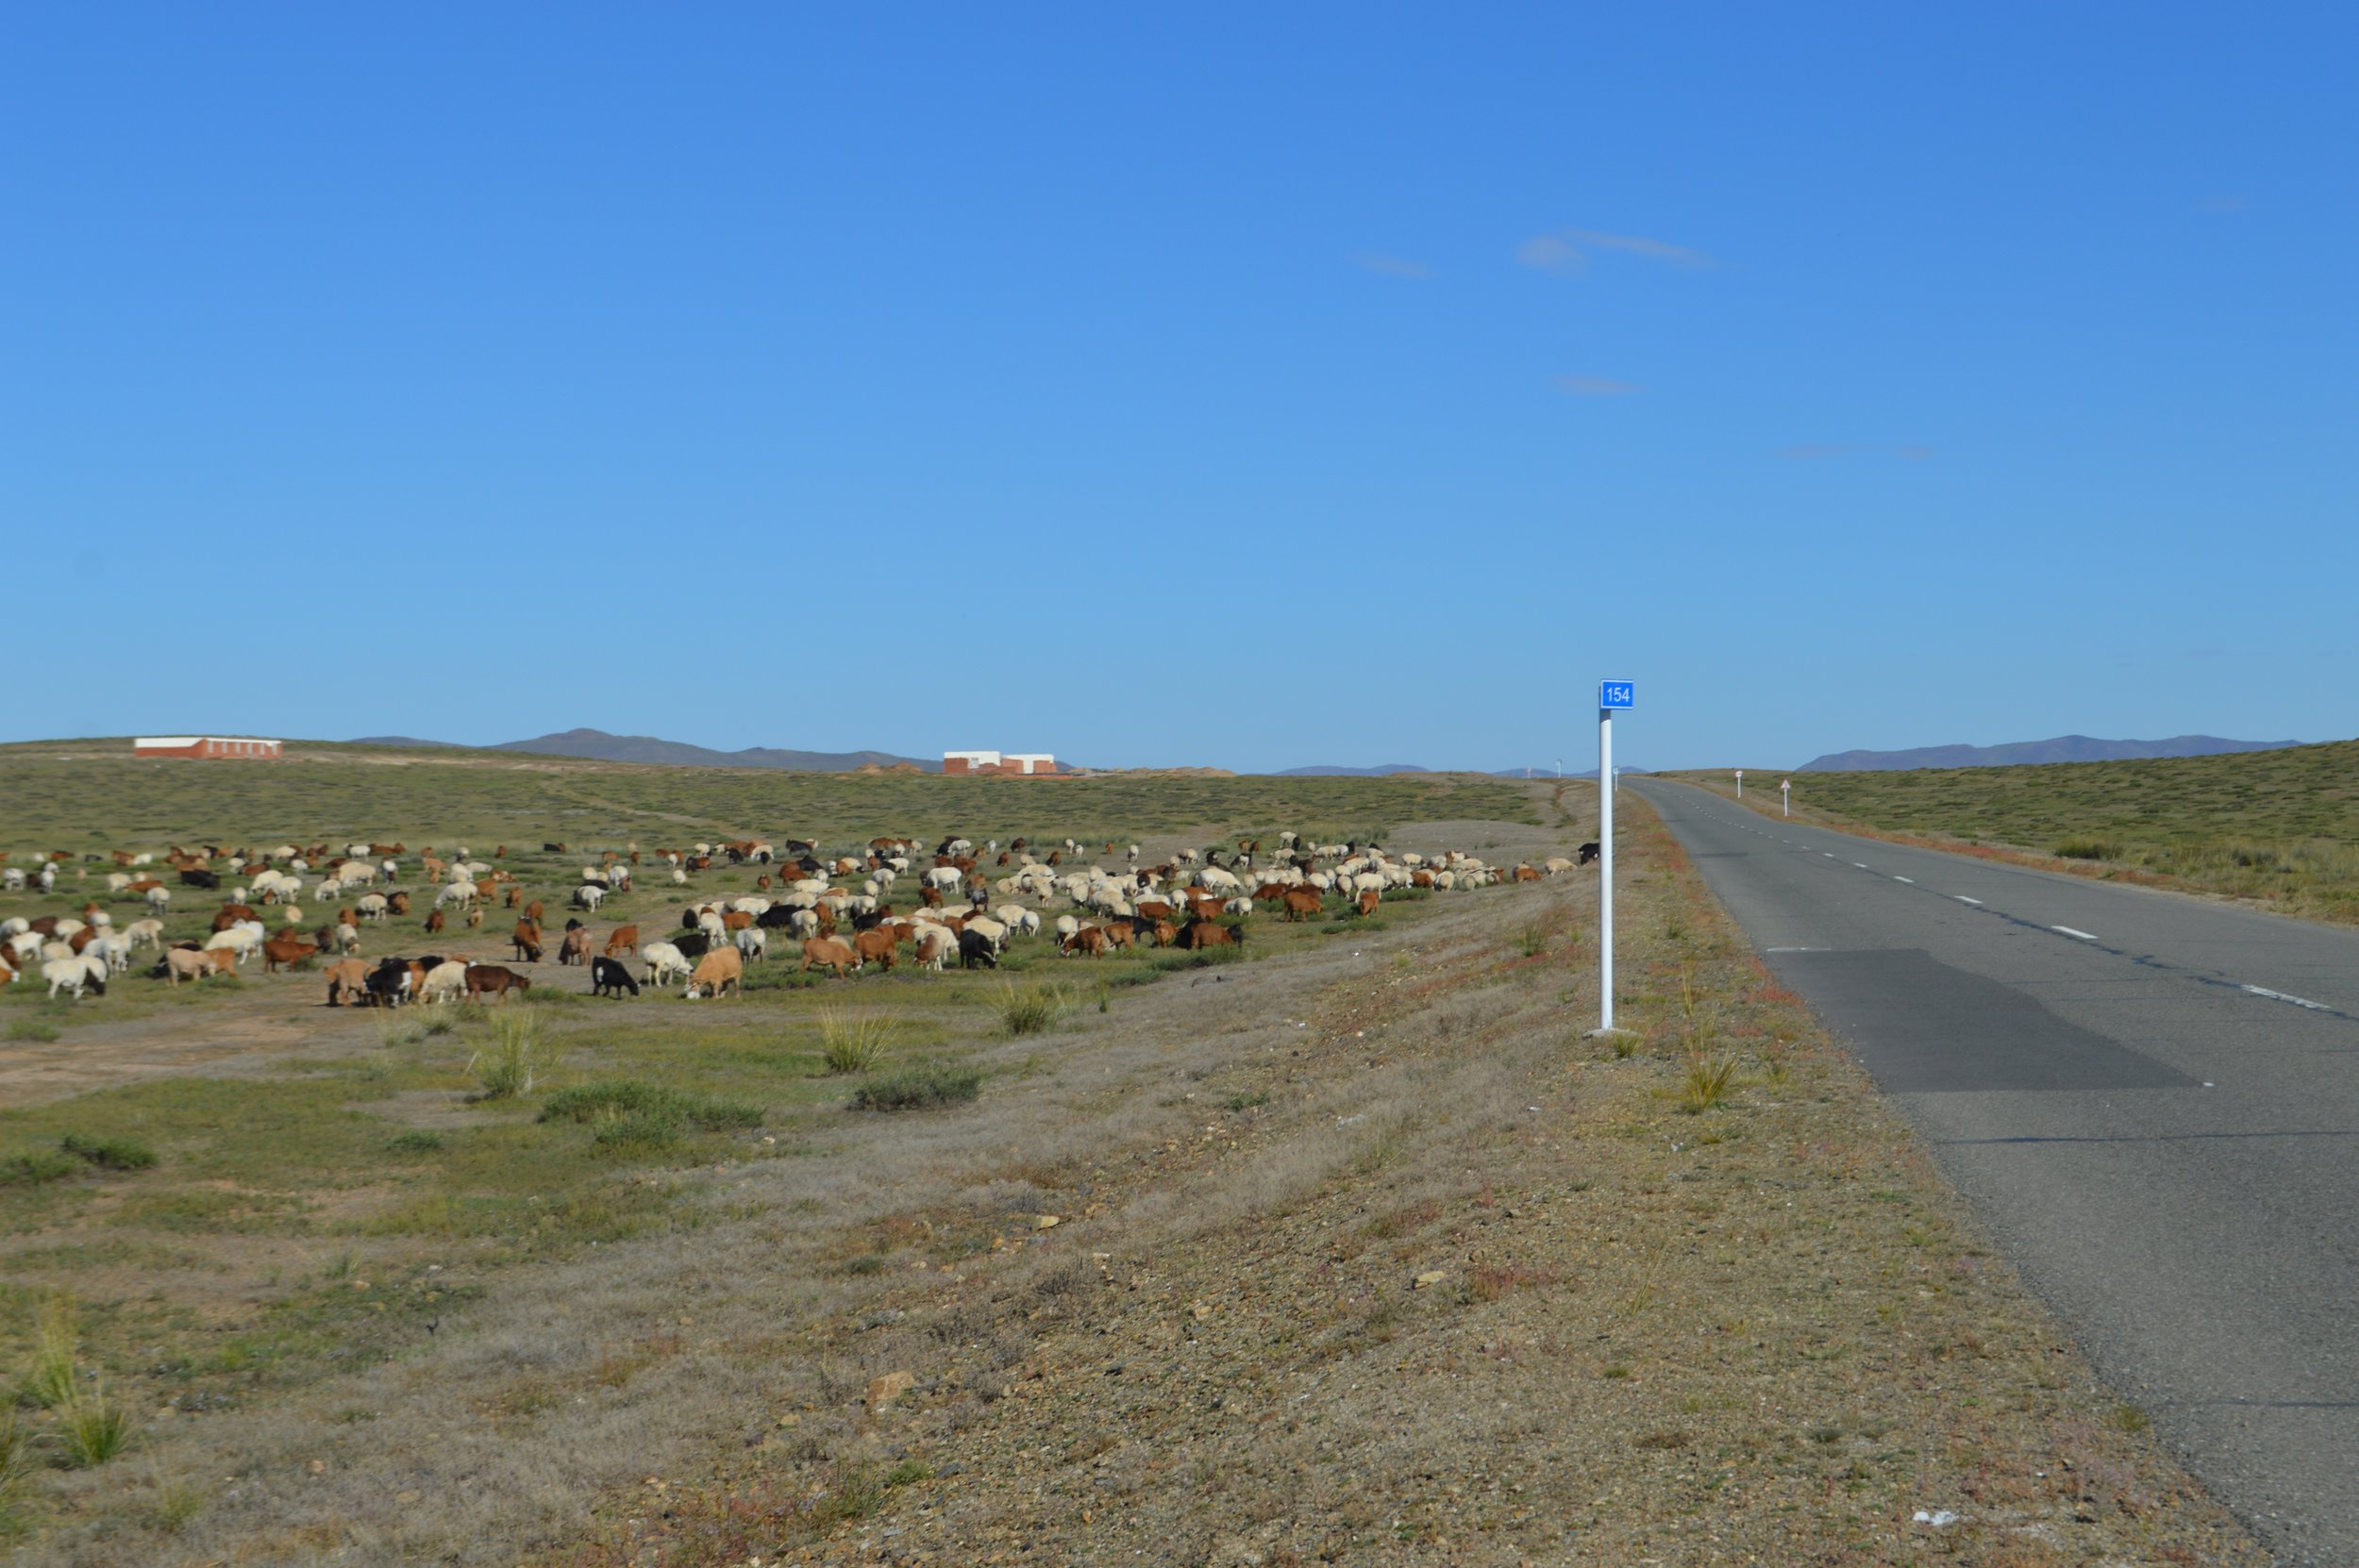 A large herd of sheep and goats near the roadside